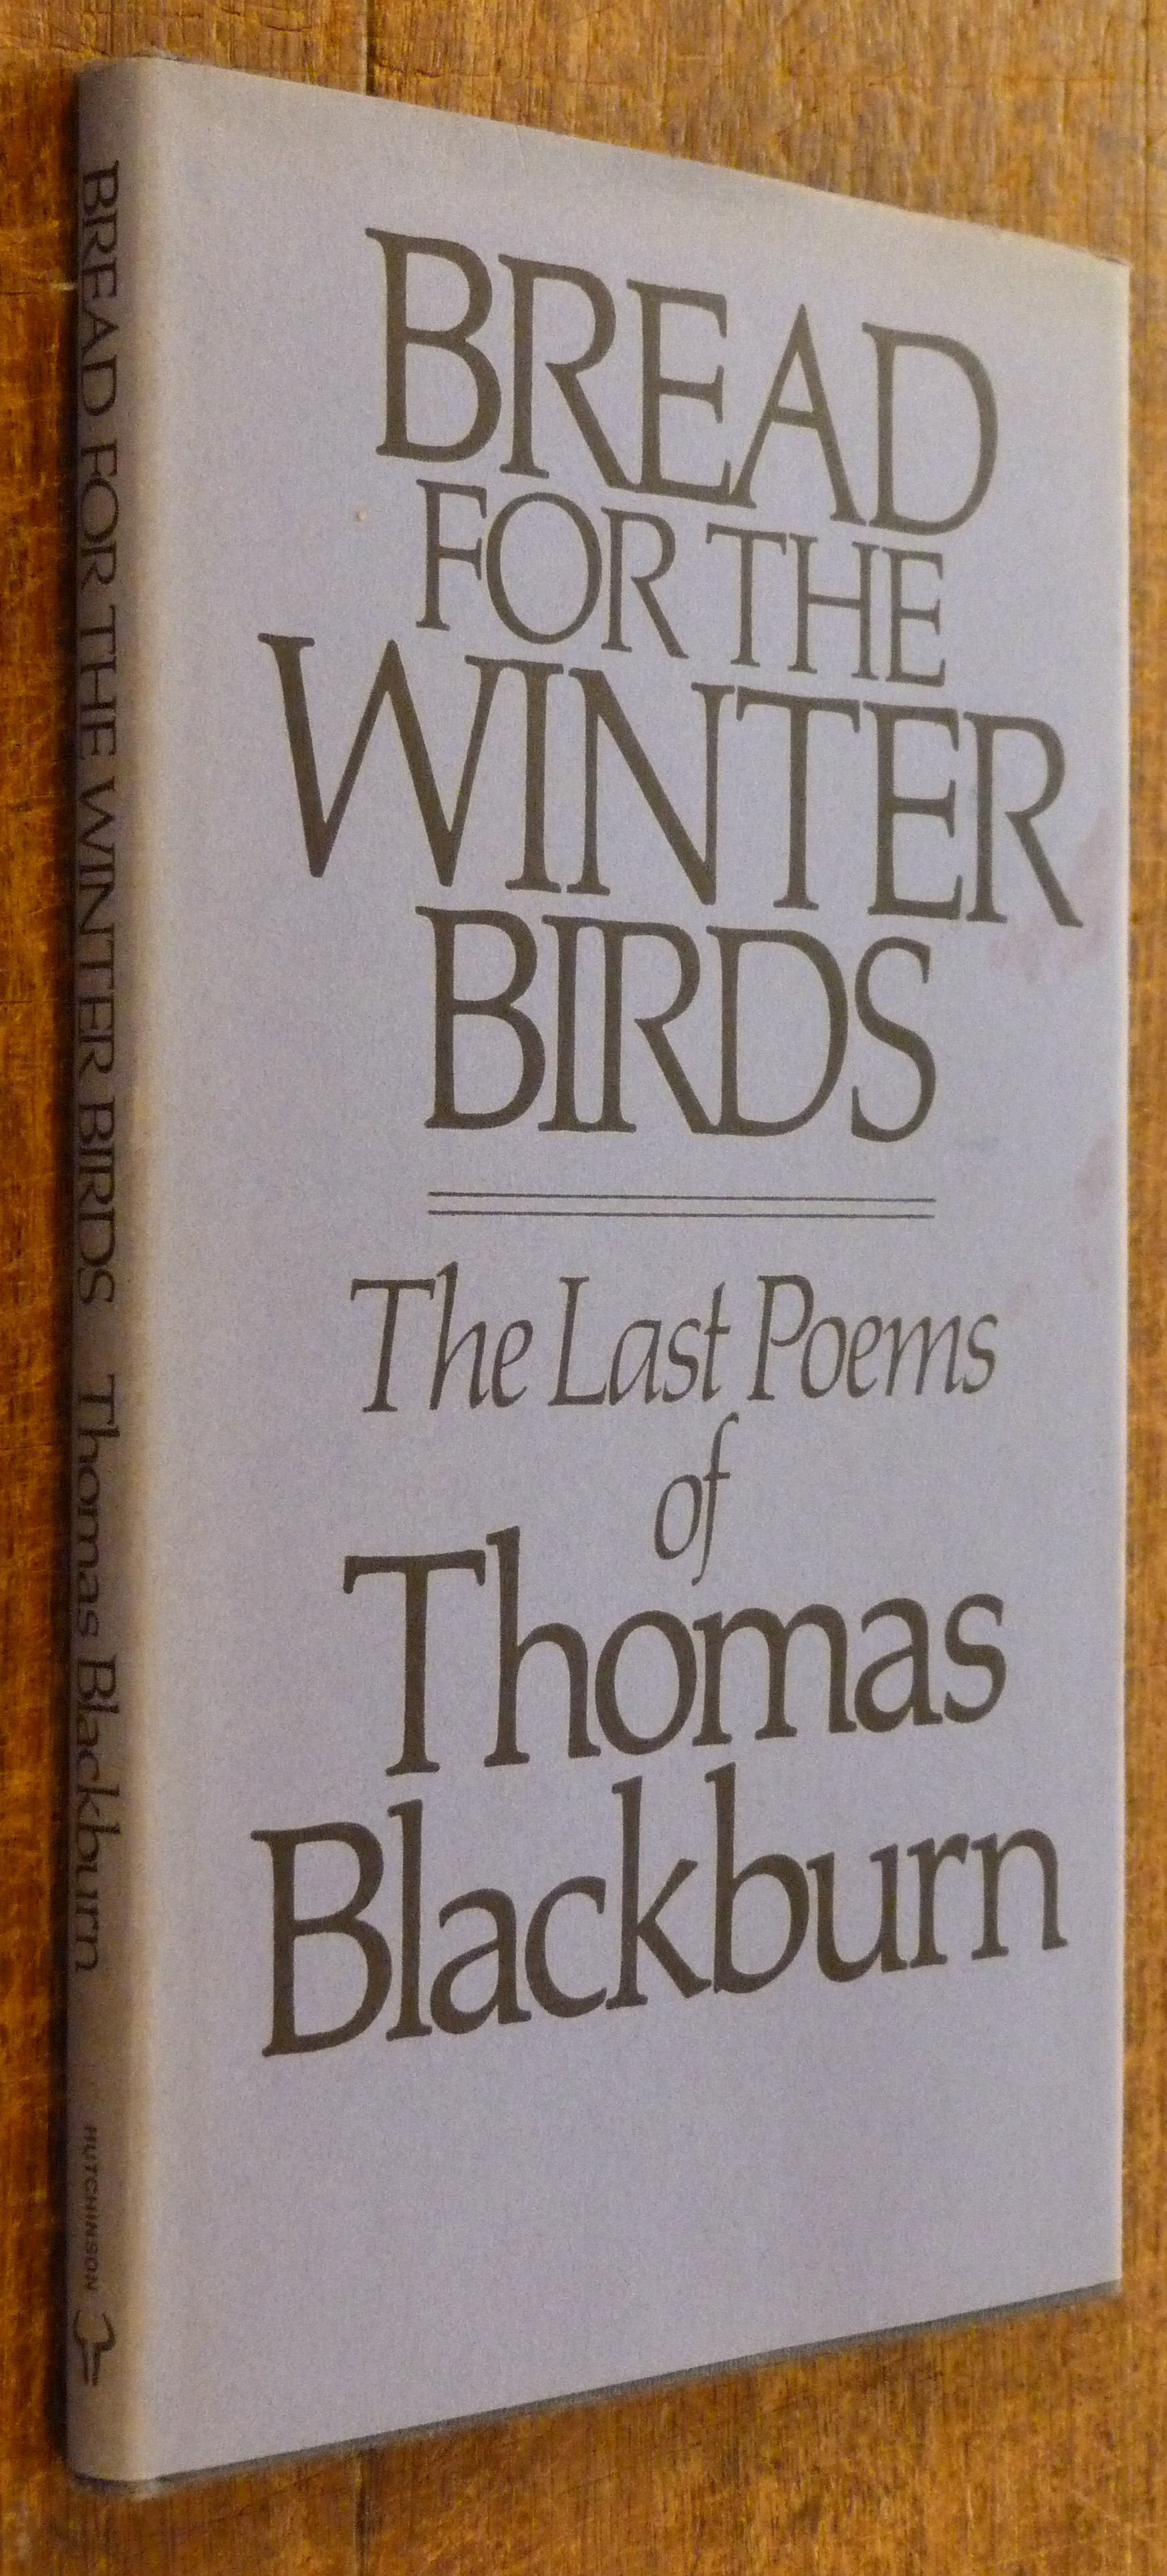 Image for Bread for the Winter Birds The Last Poems of Thomas Blackburn